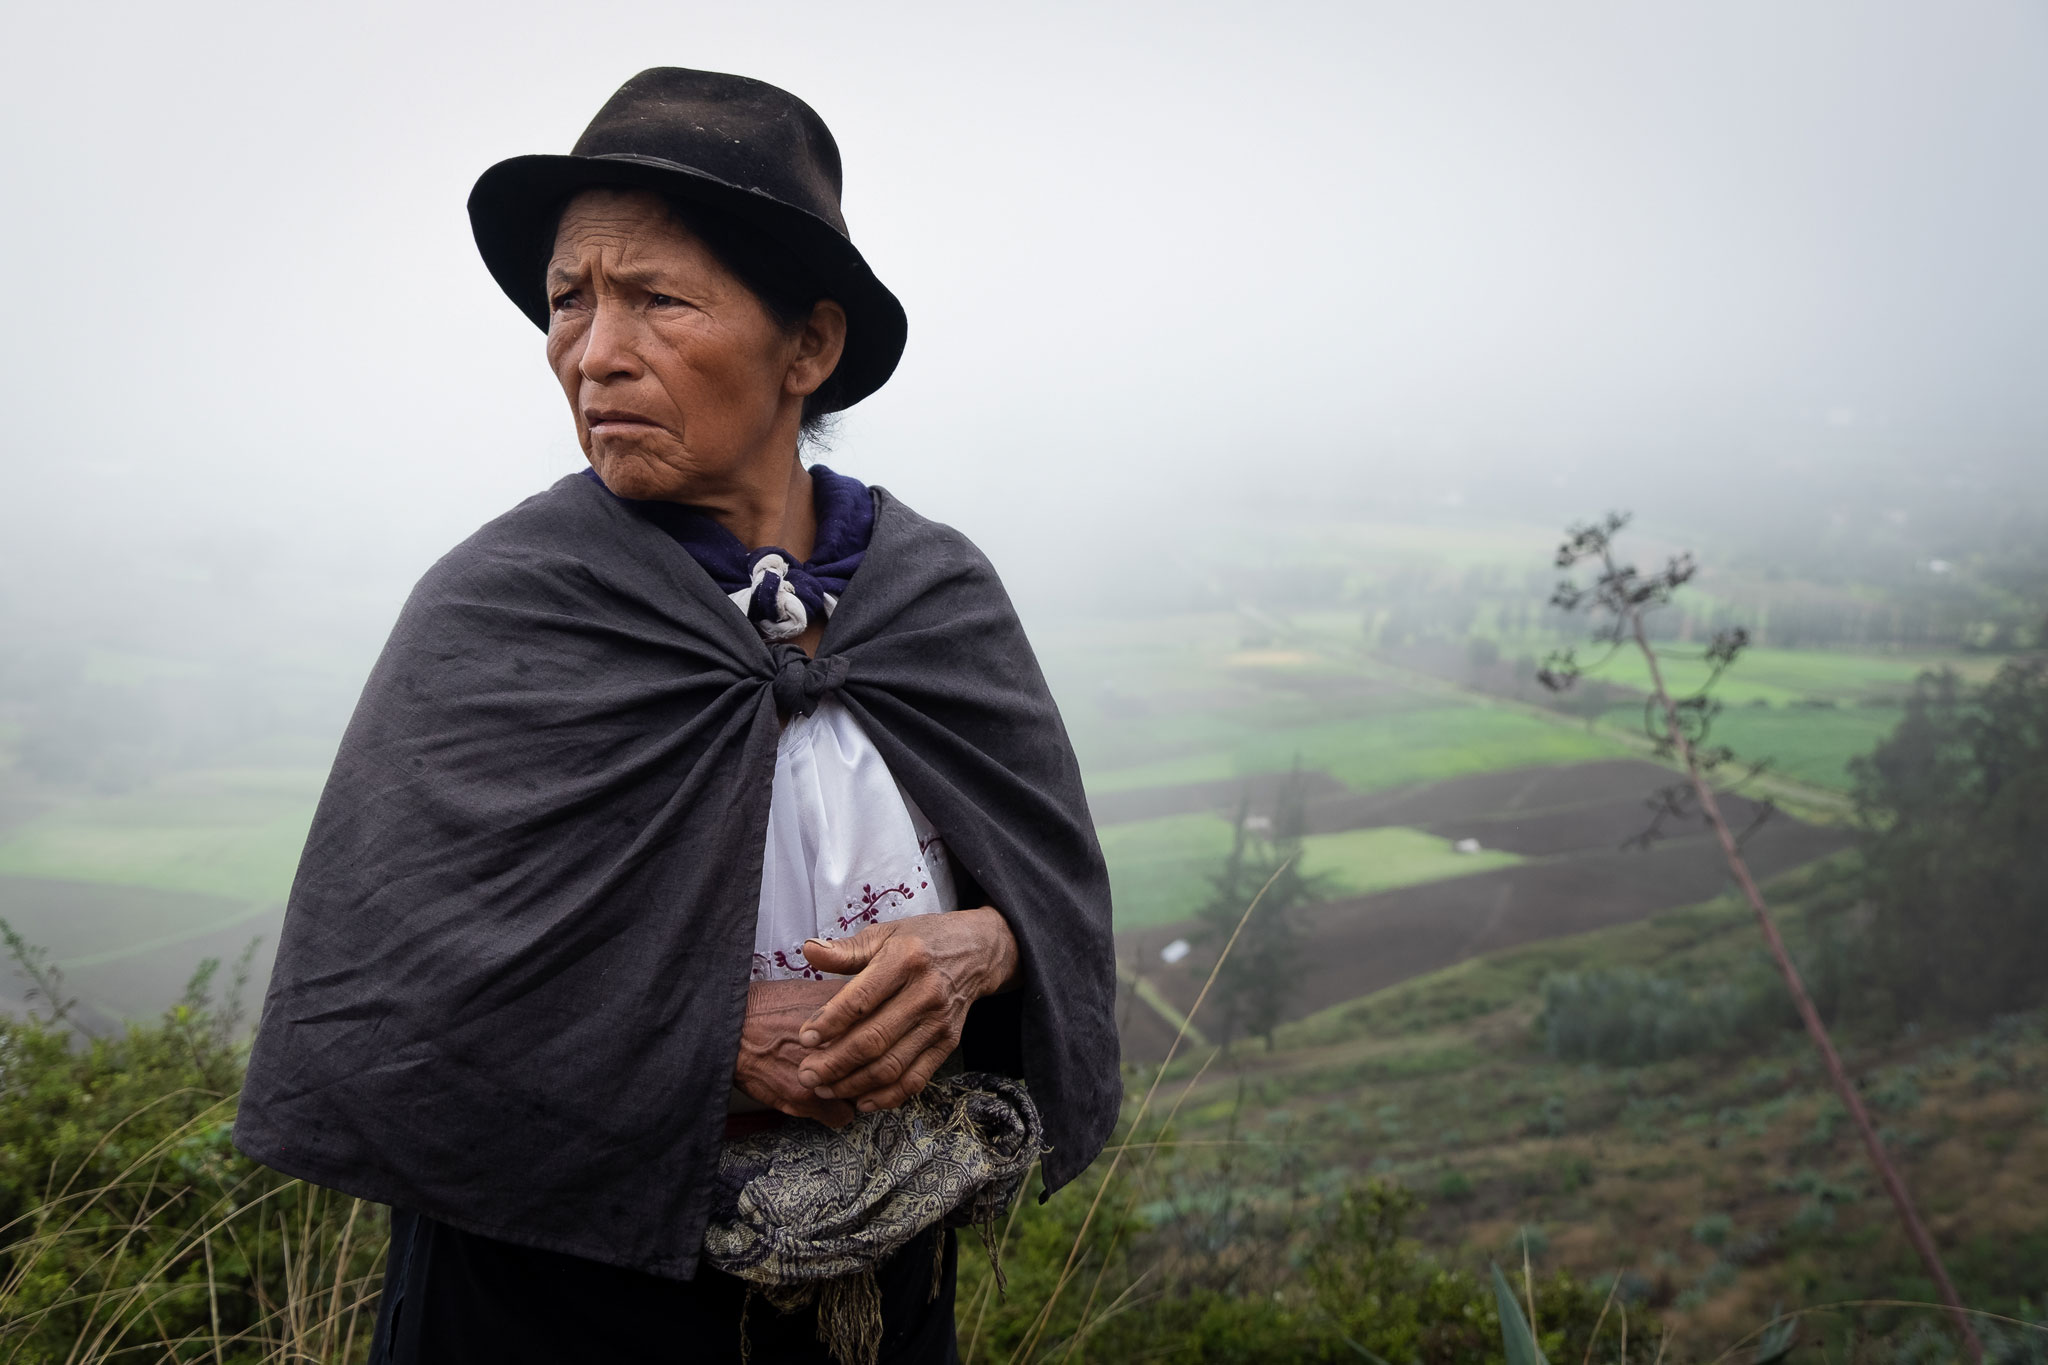 QUICHUA WOMAN FROM ECUADOR